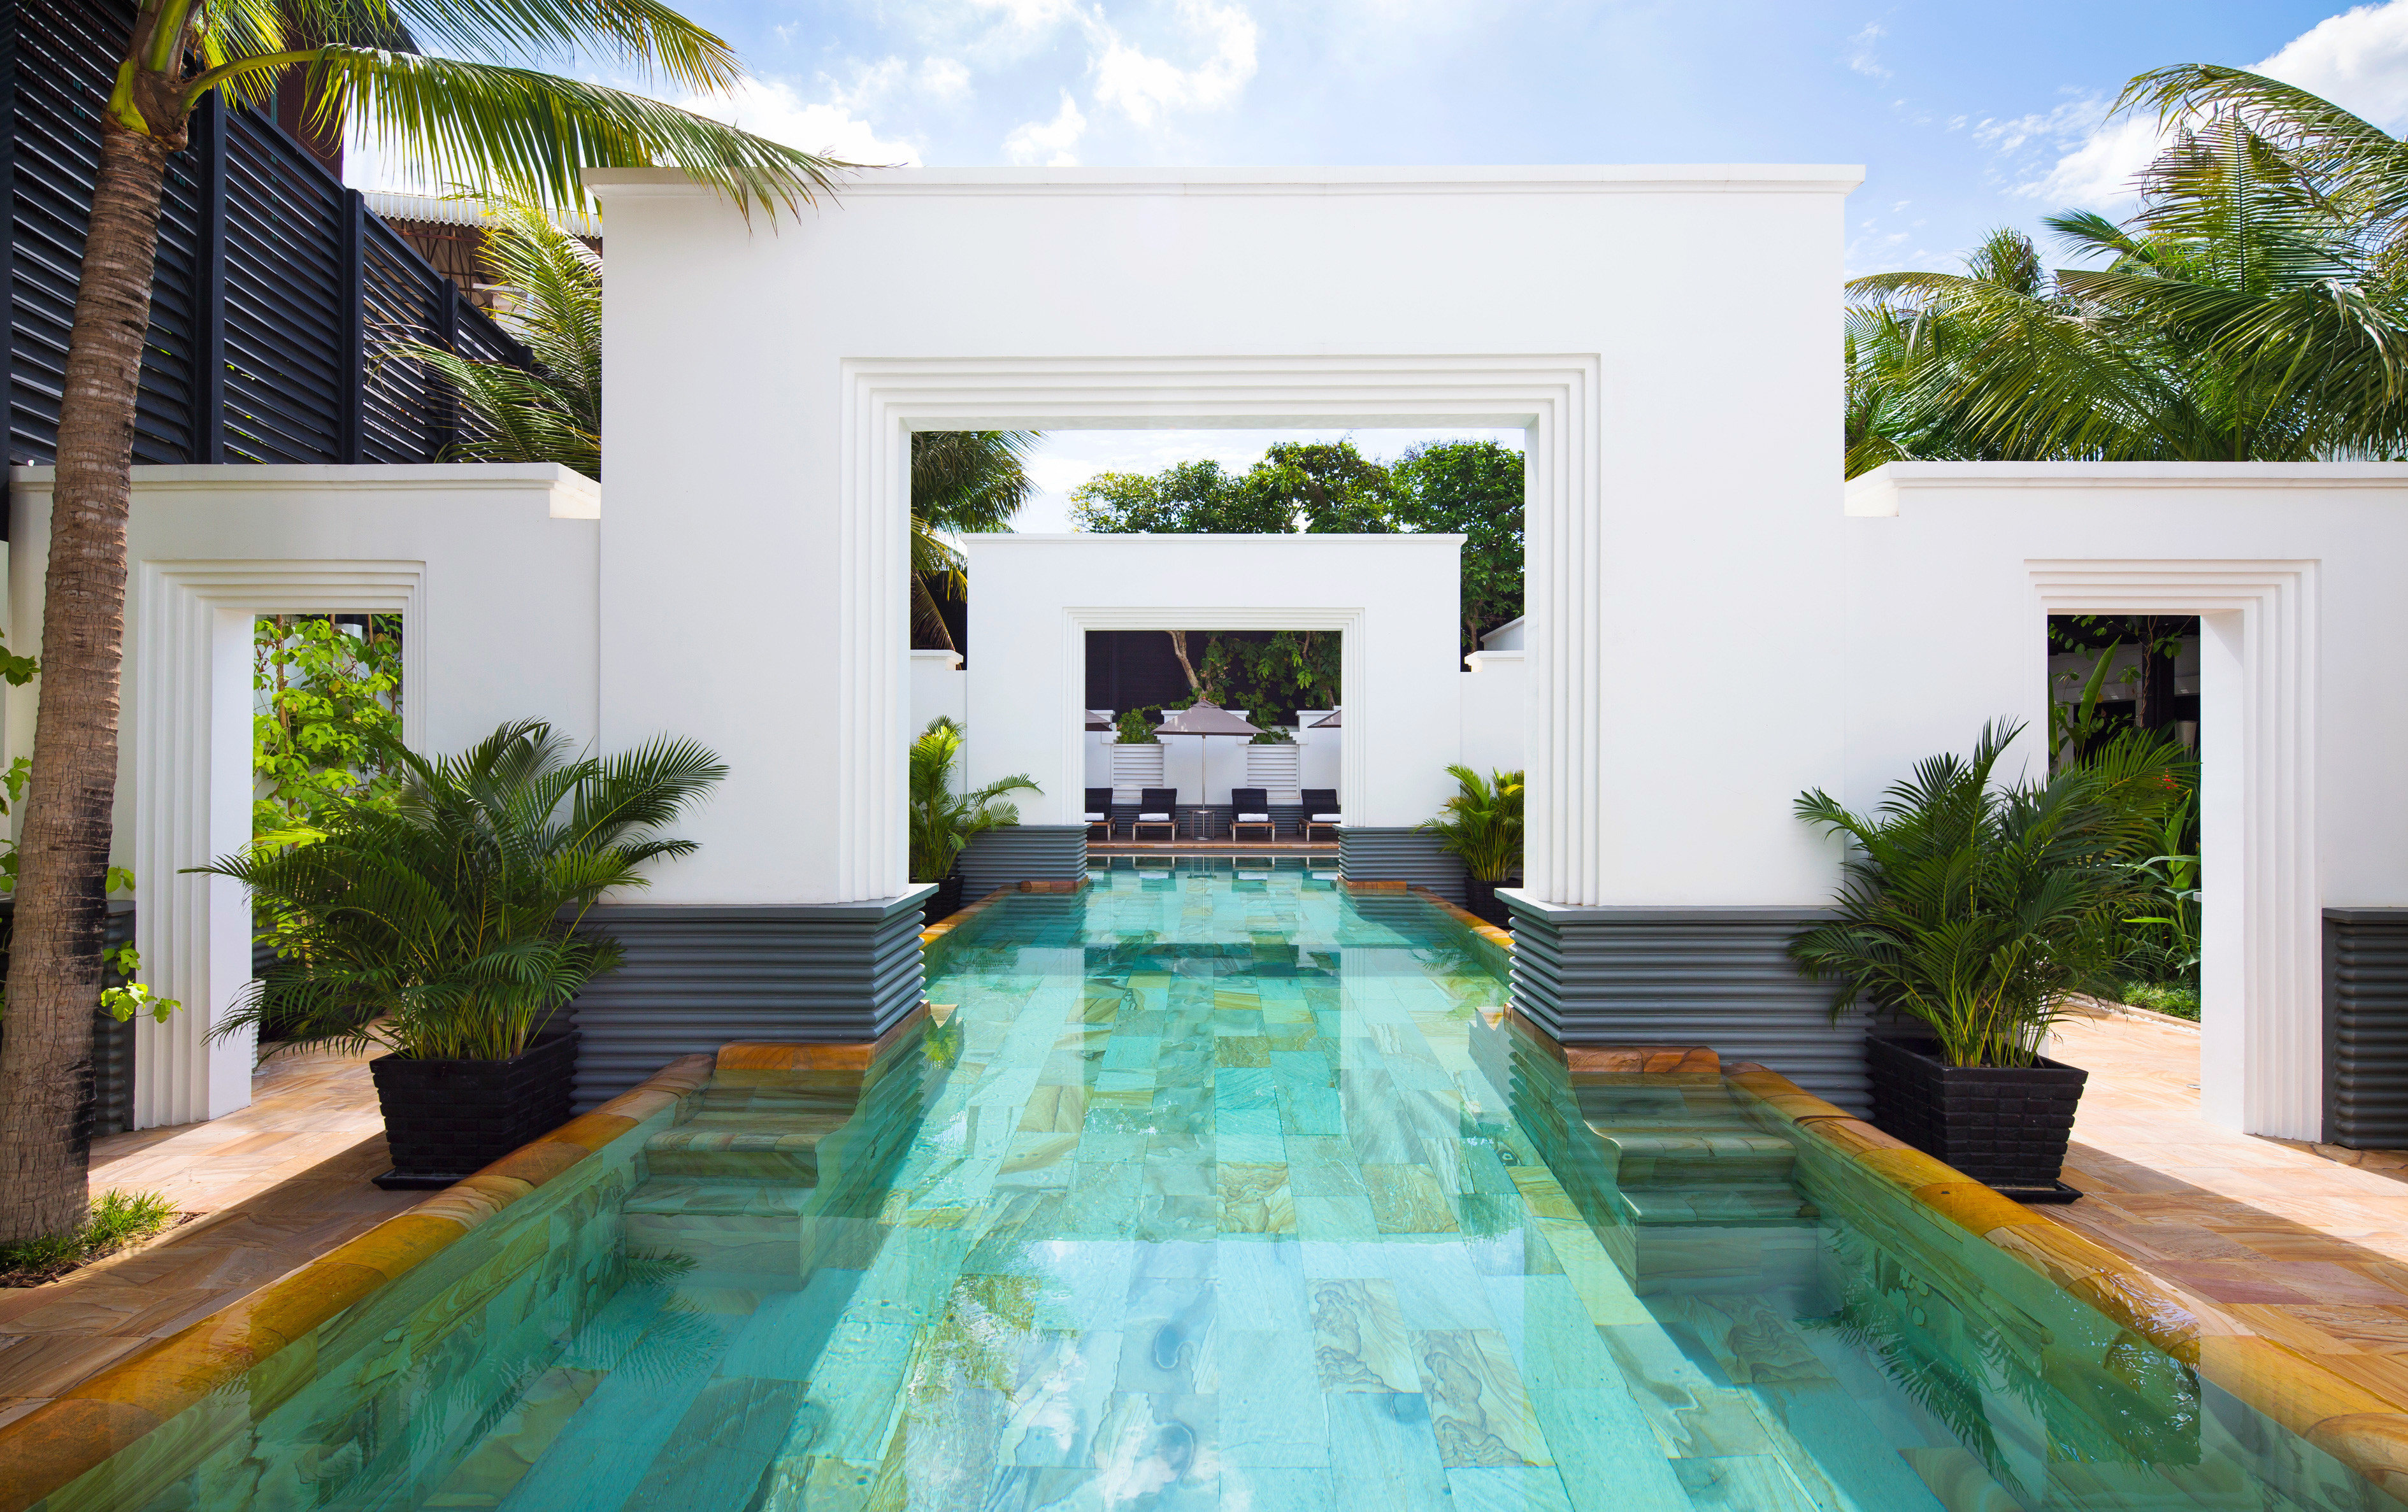 Grounds Luxury Pool swimming pool property Villa home backyard condominium Courtyard Resort mansion